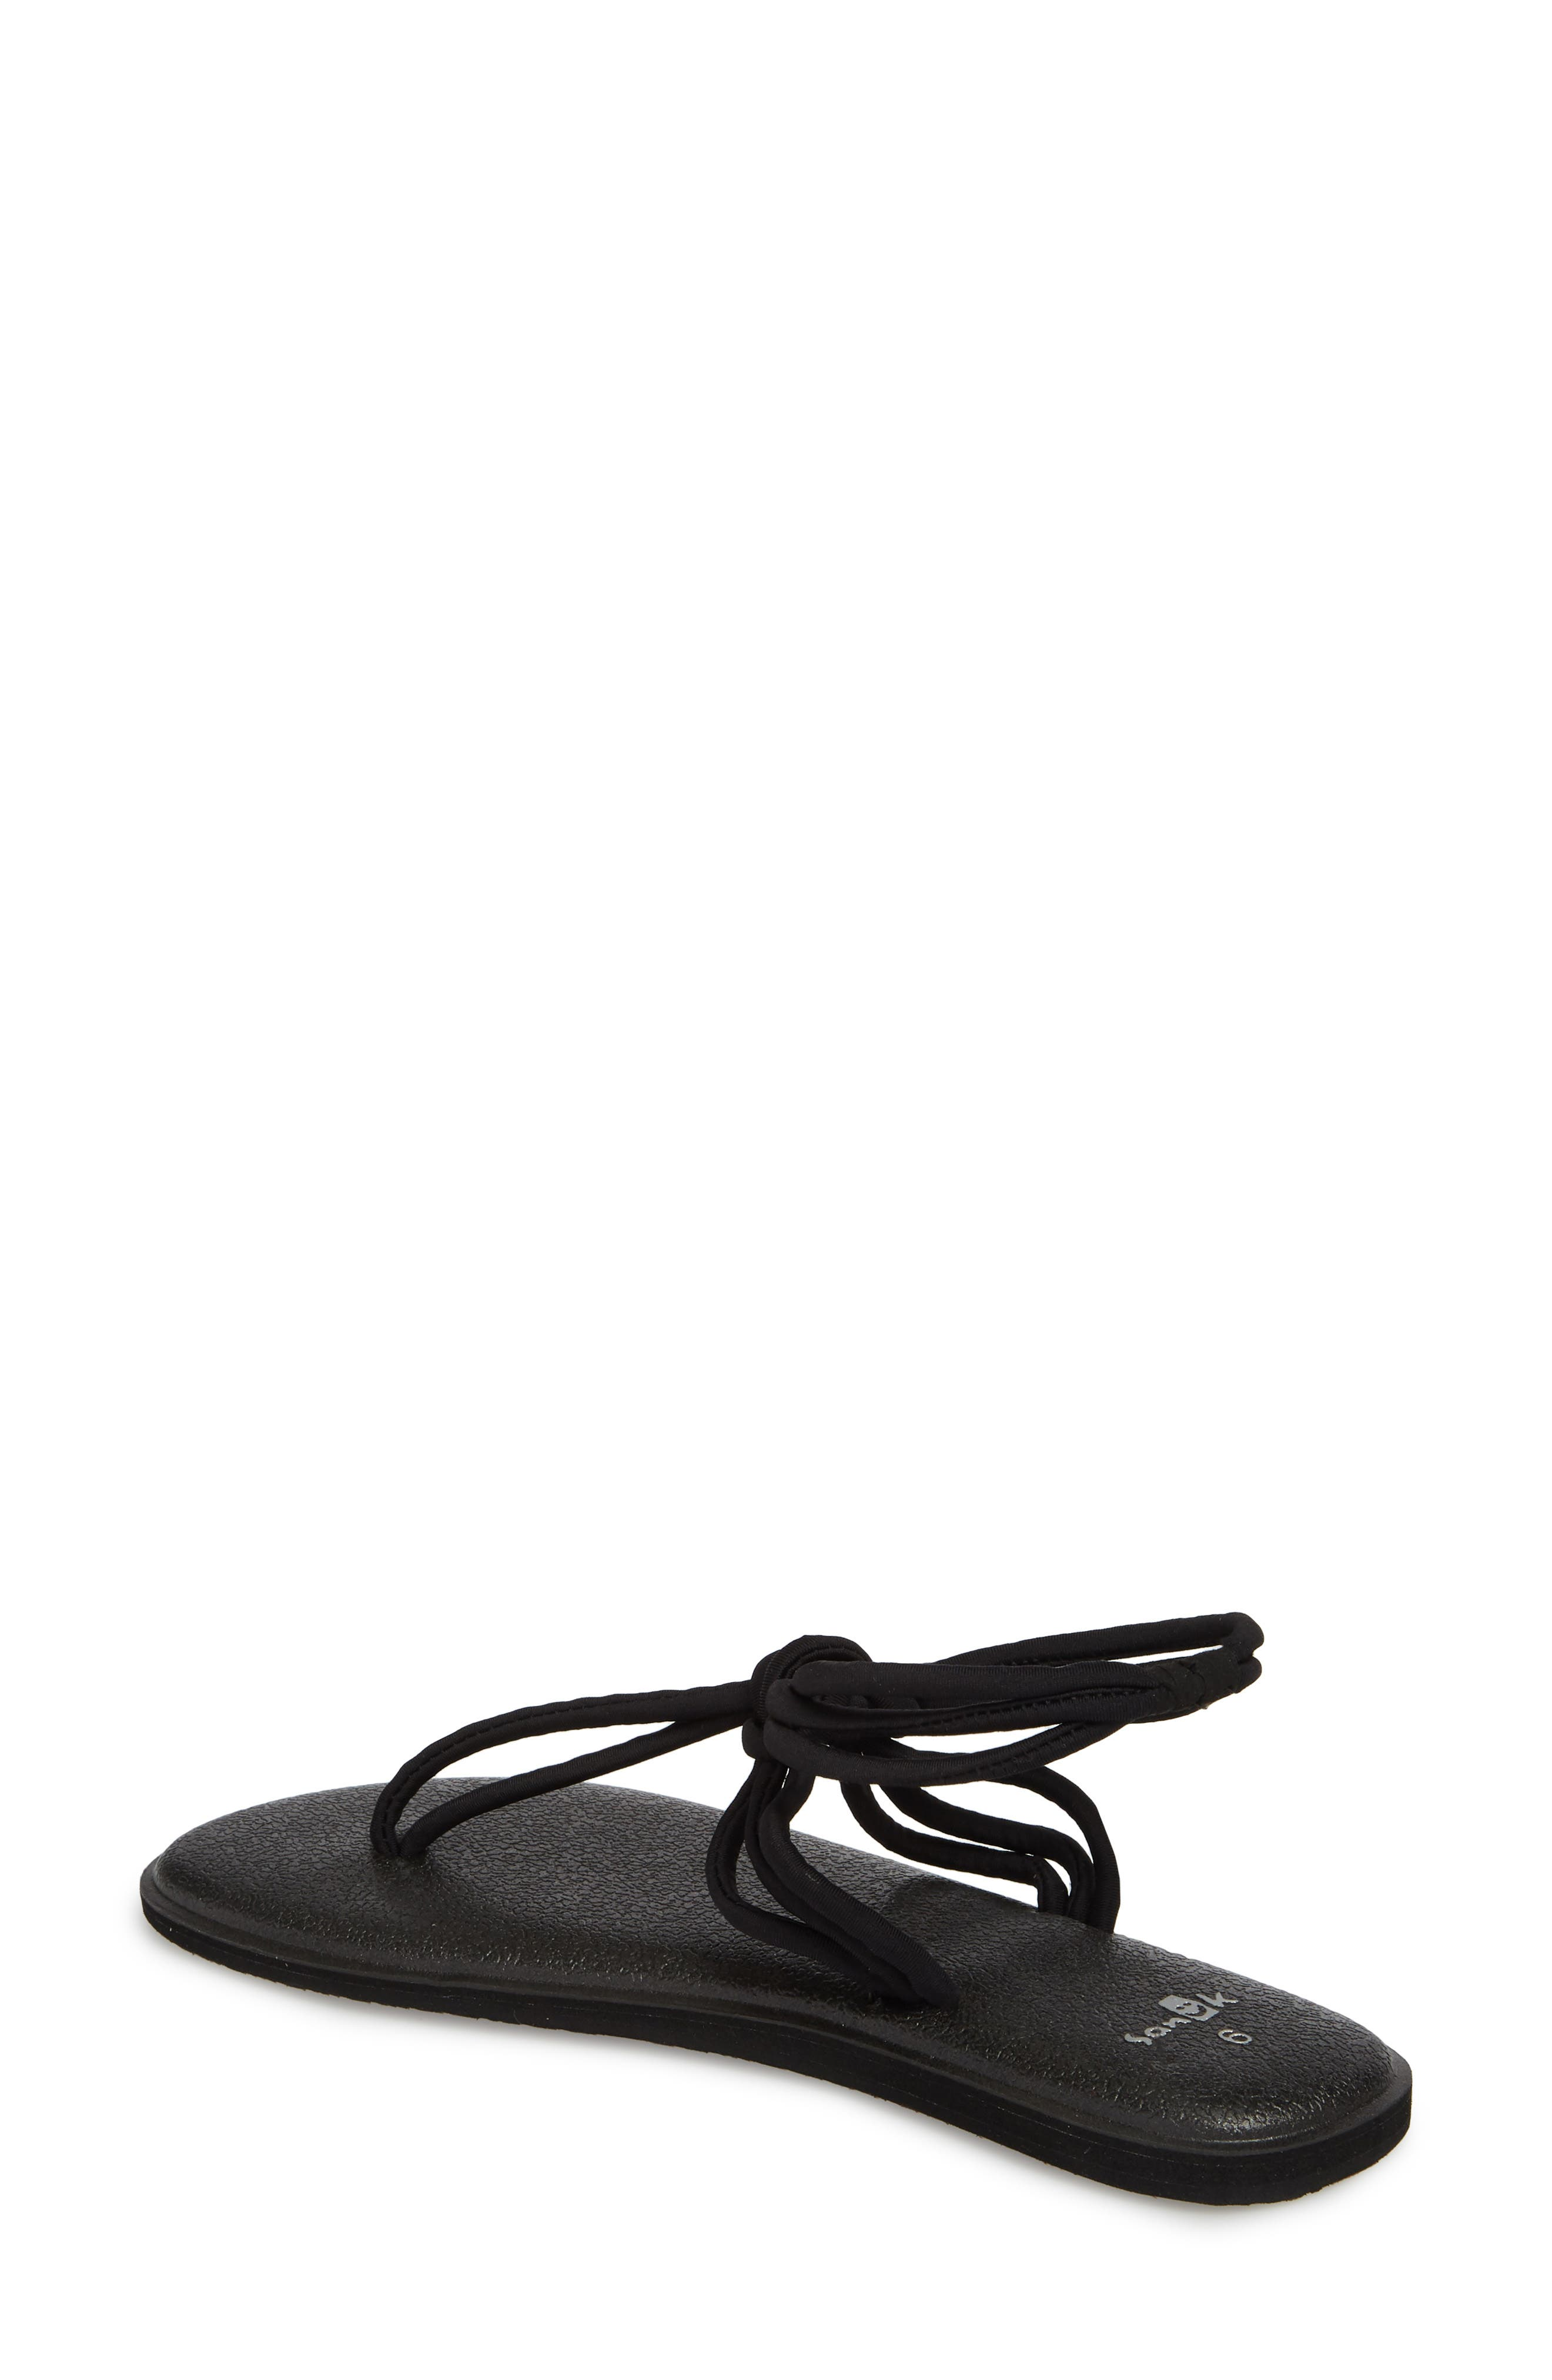 Yoga Sunshine Knotted Thong Sandal,                             Alternate thumbnail 2, color,                             Black